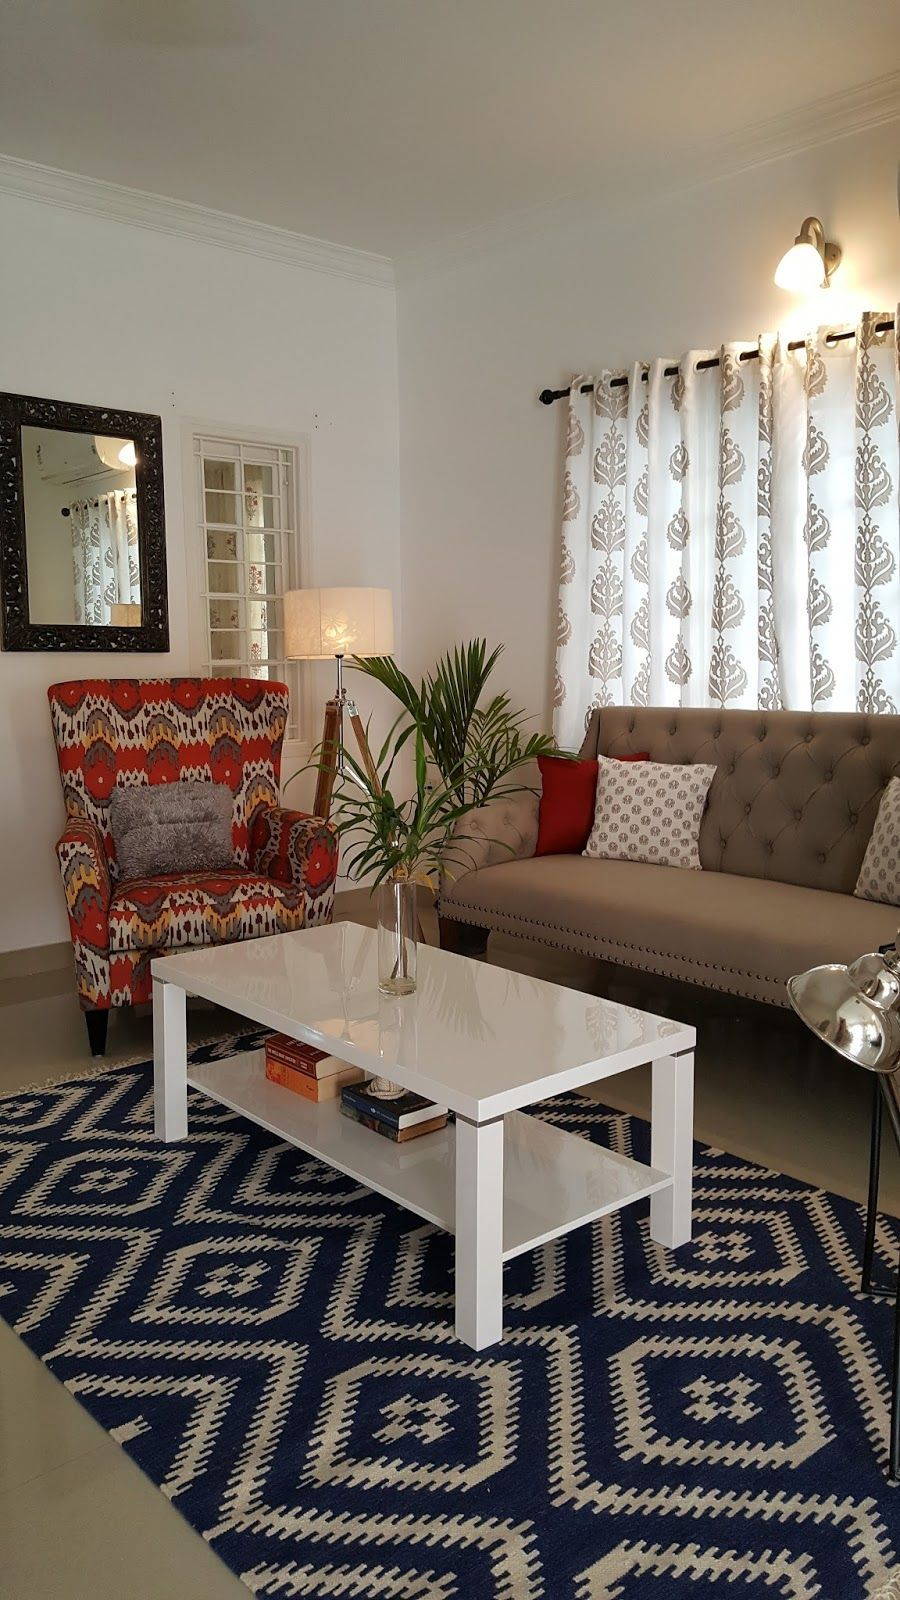 kerala living room decorating ideas in 2020 (With images ...